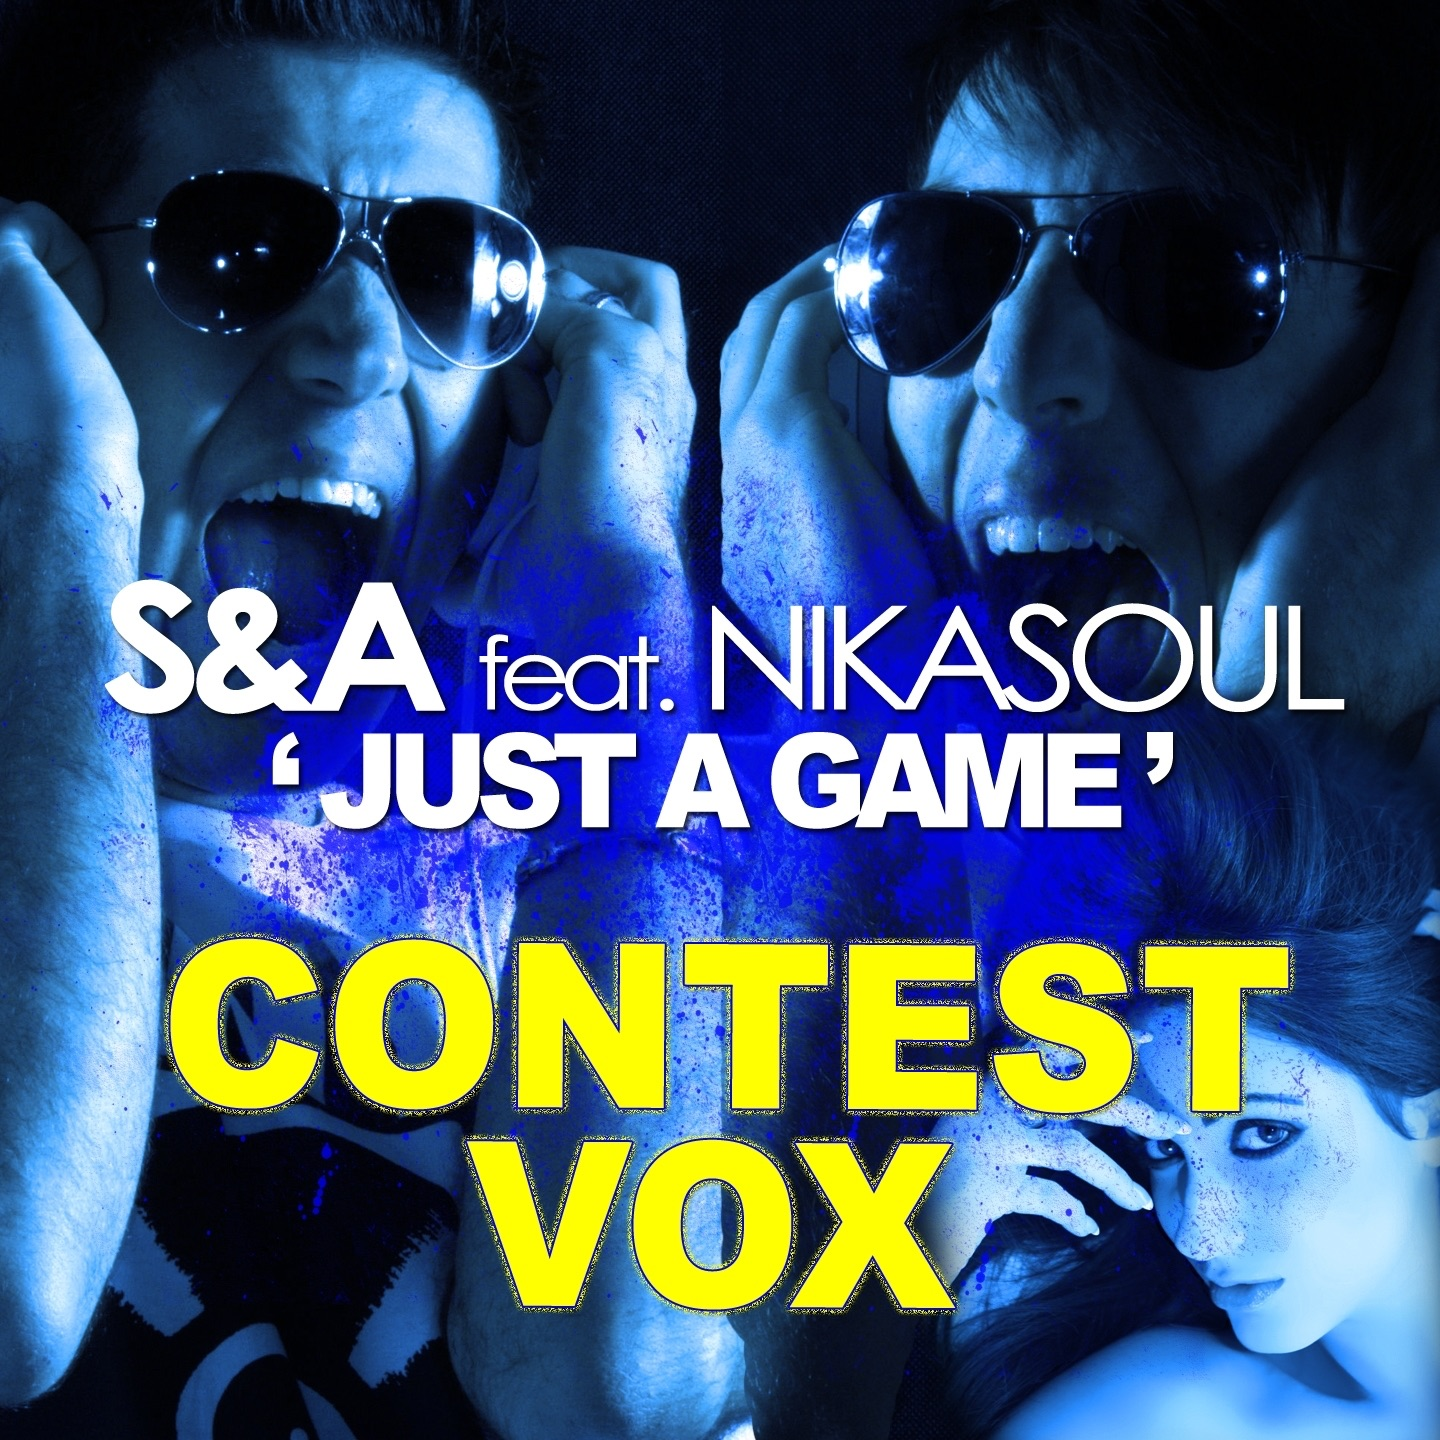 Just a Game Contest Vox (feat. Nikasoul) - Single